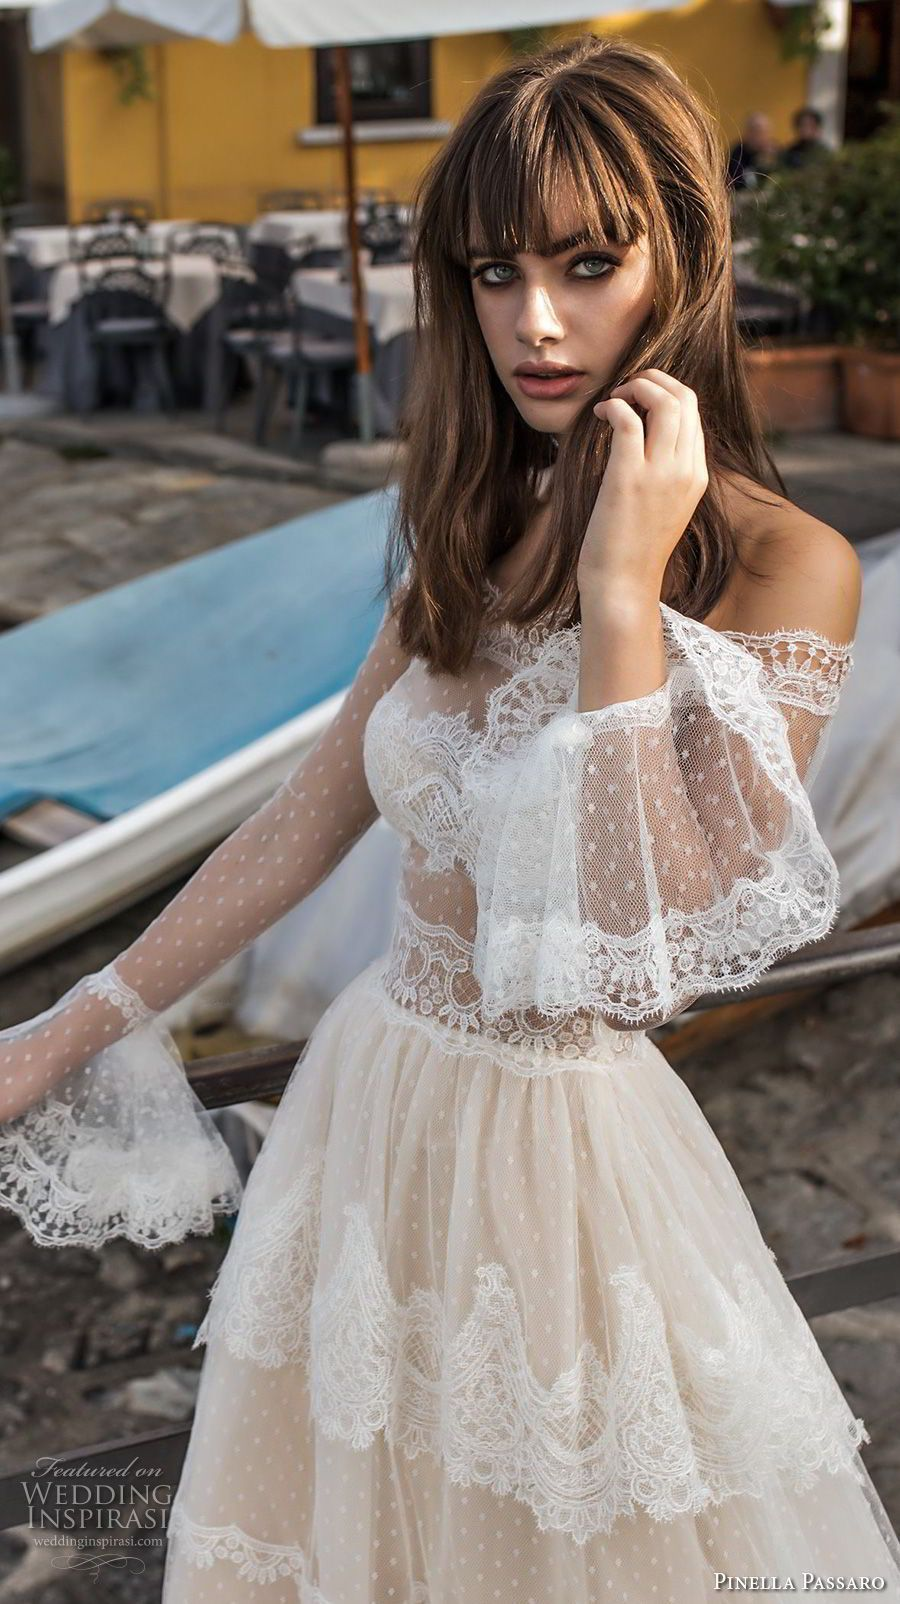 Wedding dresses with lace sleeves off the shoulder  pinella passaro  bridal off the shoulder long poet sleeves